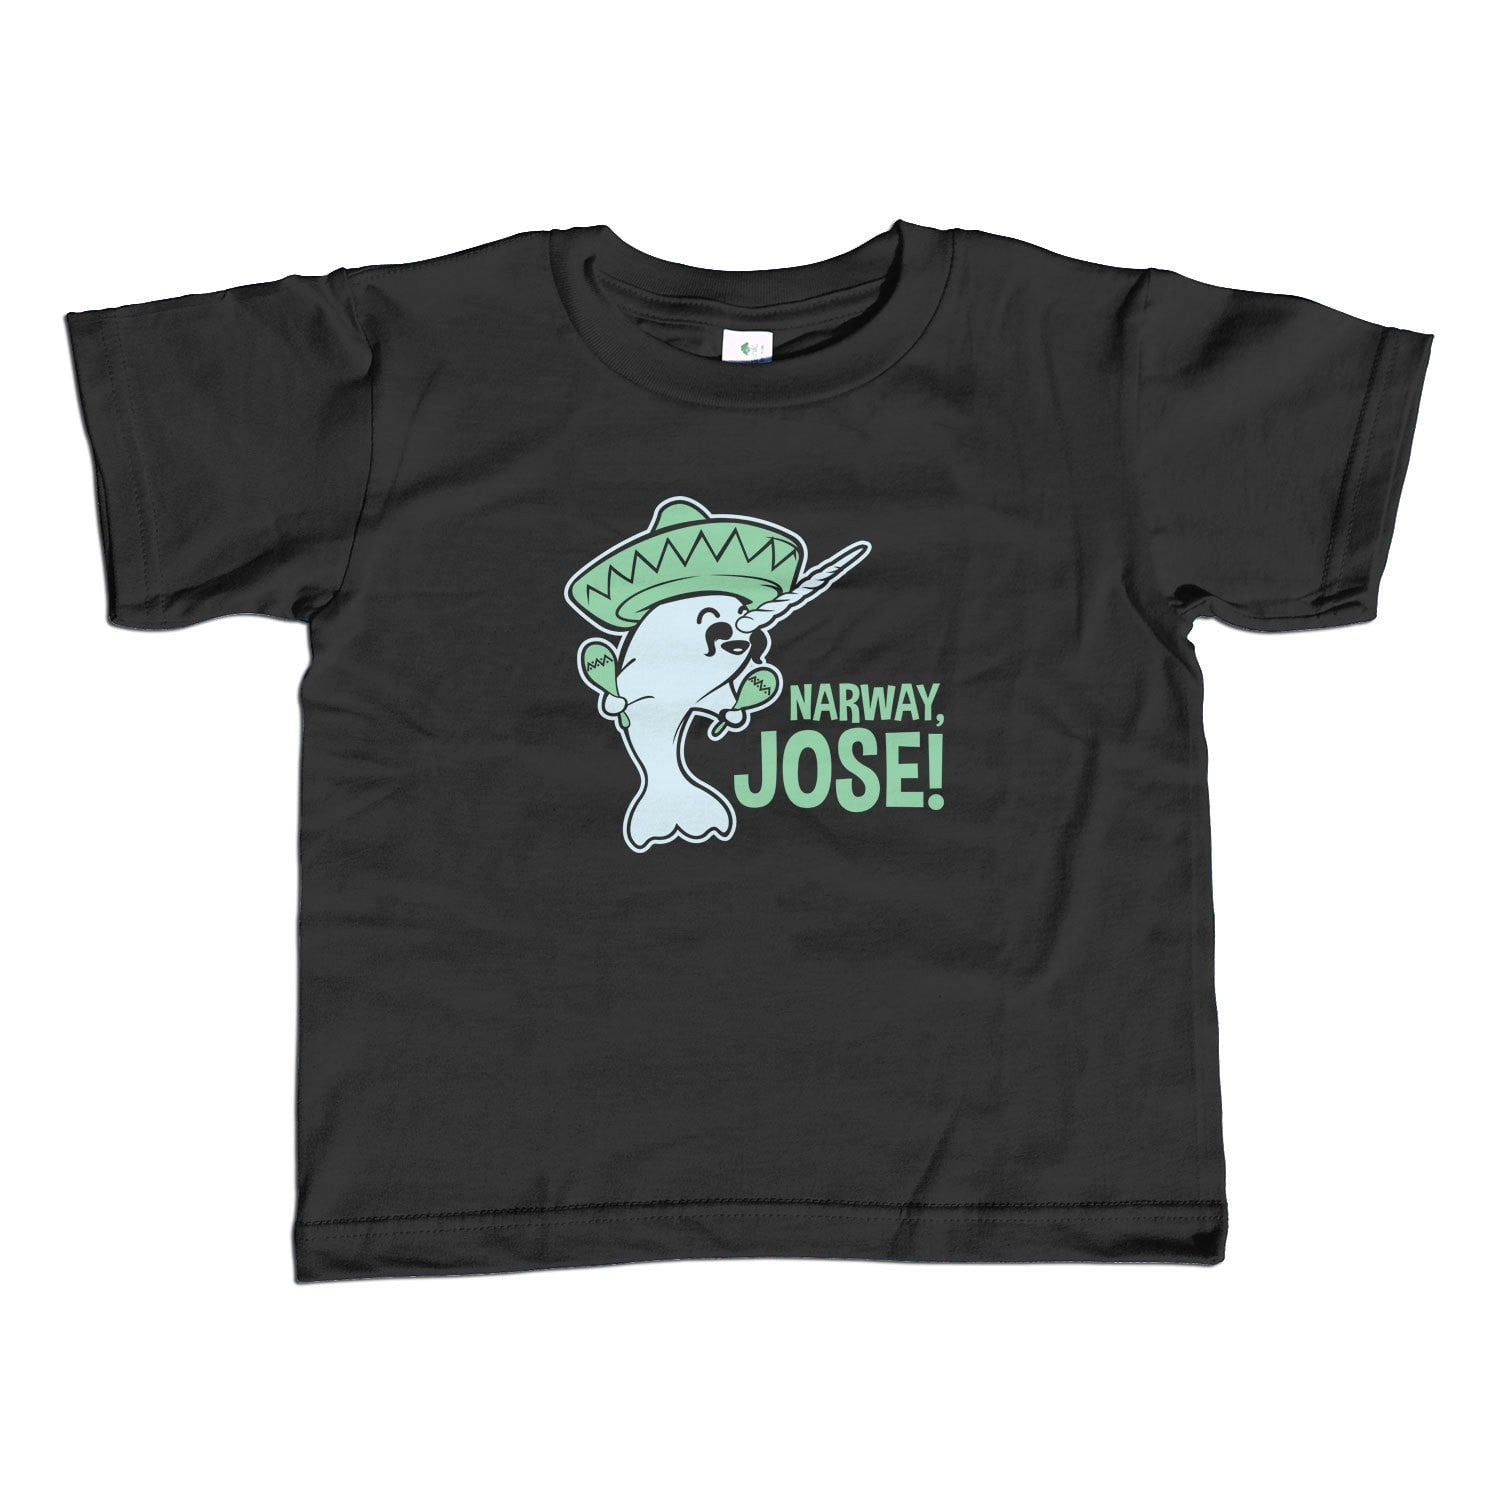 Boy's Narway Jose Narwhal T-Shirt